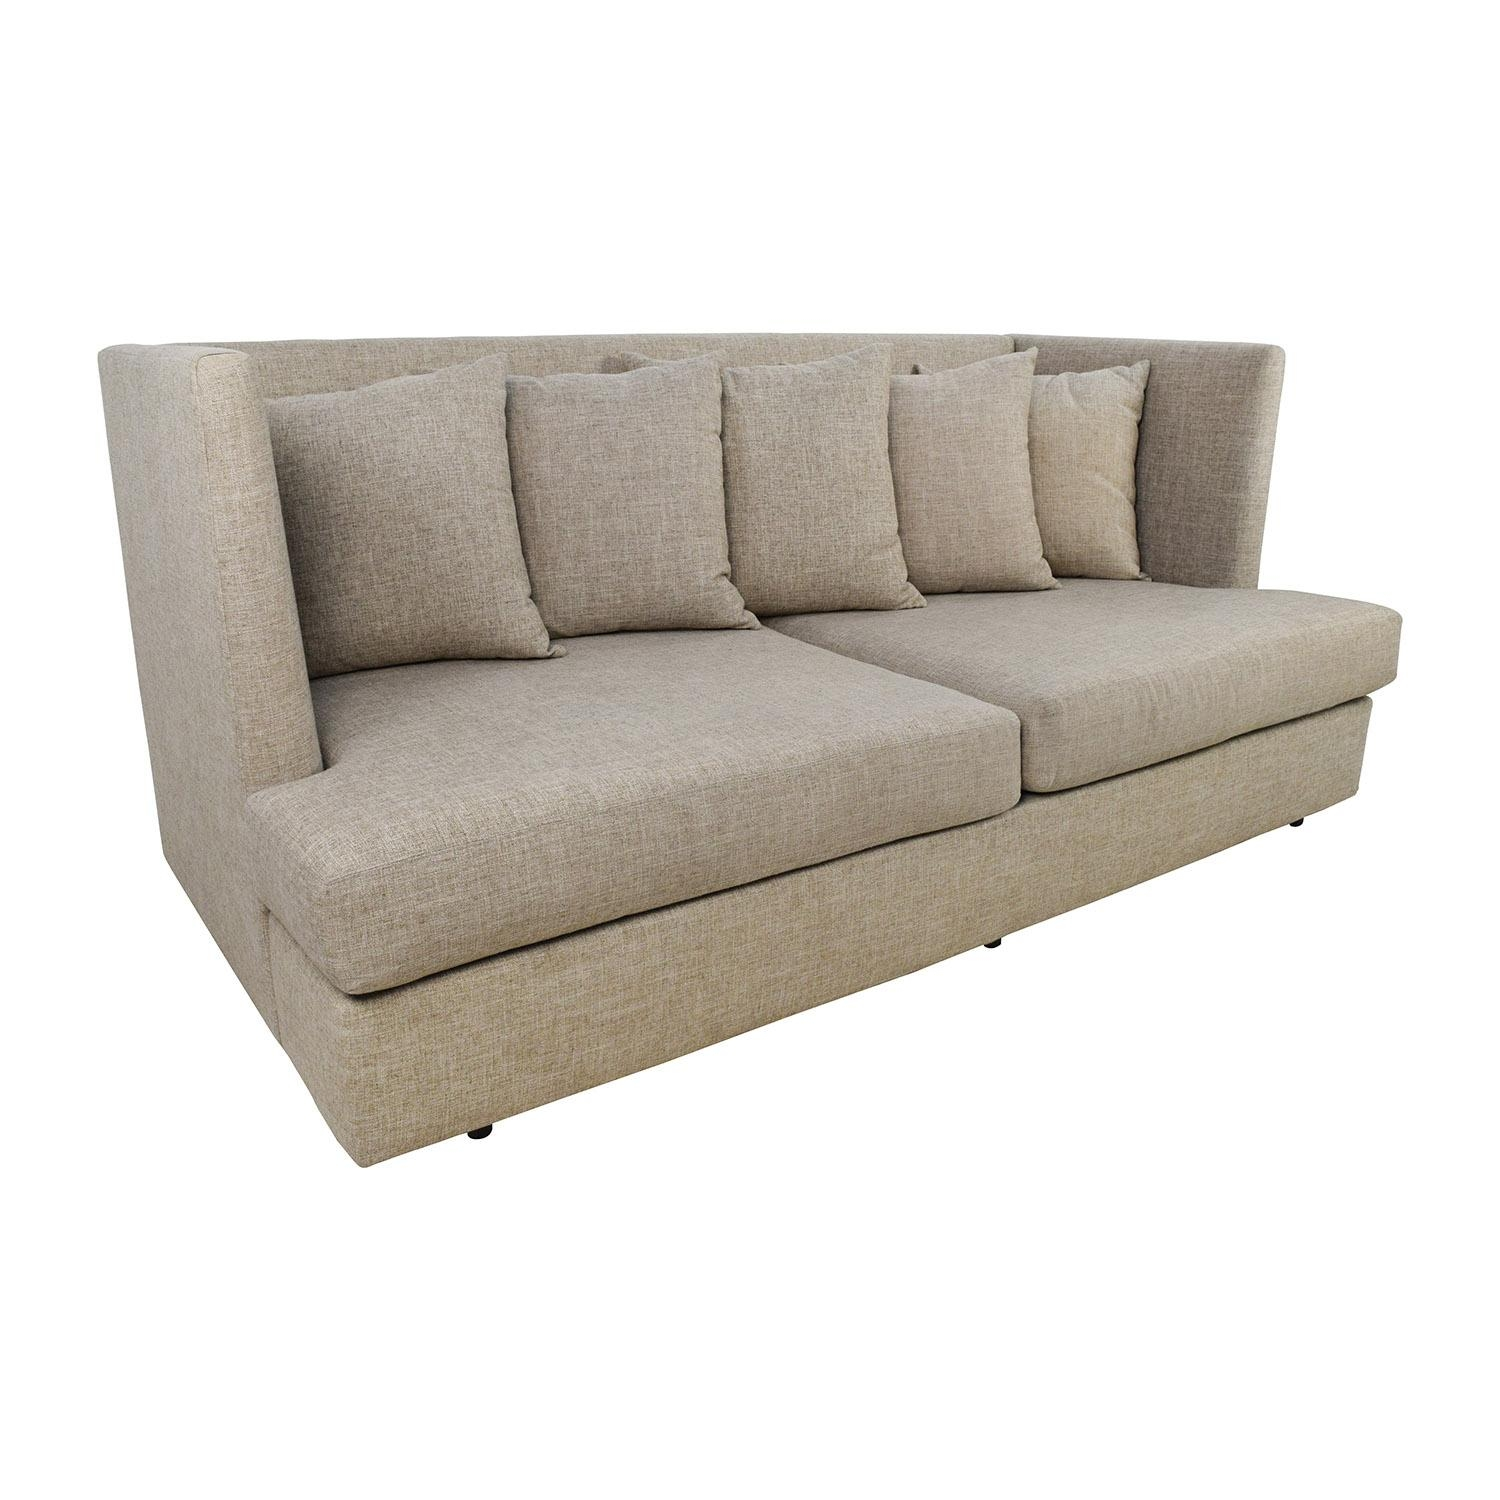 34% Off - Crate And Barrel Crate & Barrel Shelter Beige Couch / Sofas regarding Crate and Barrel Sleeper Sofas